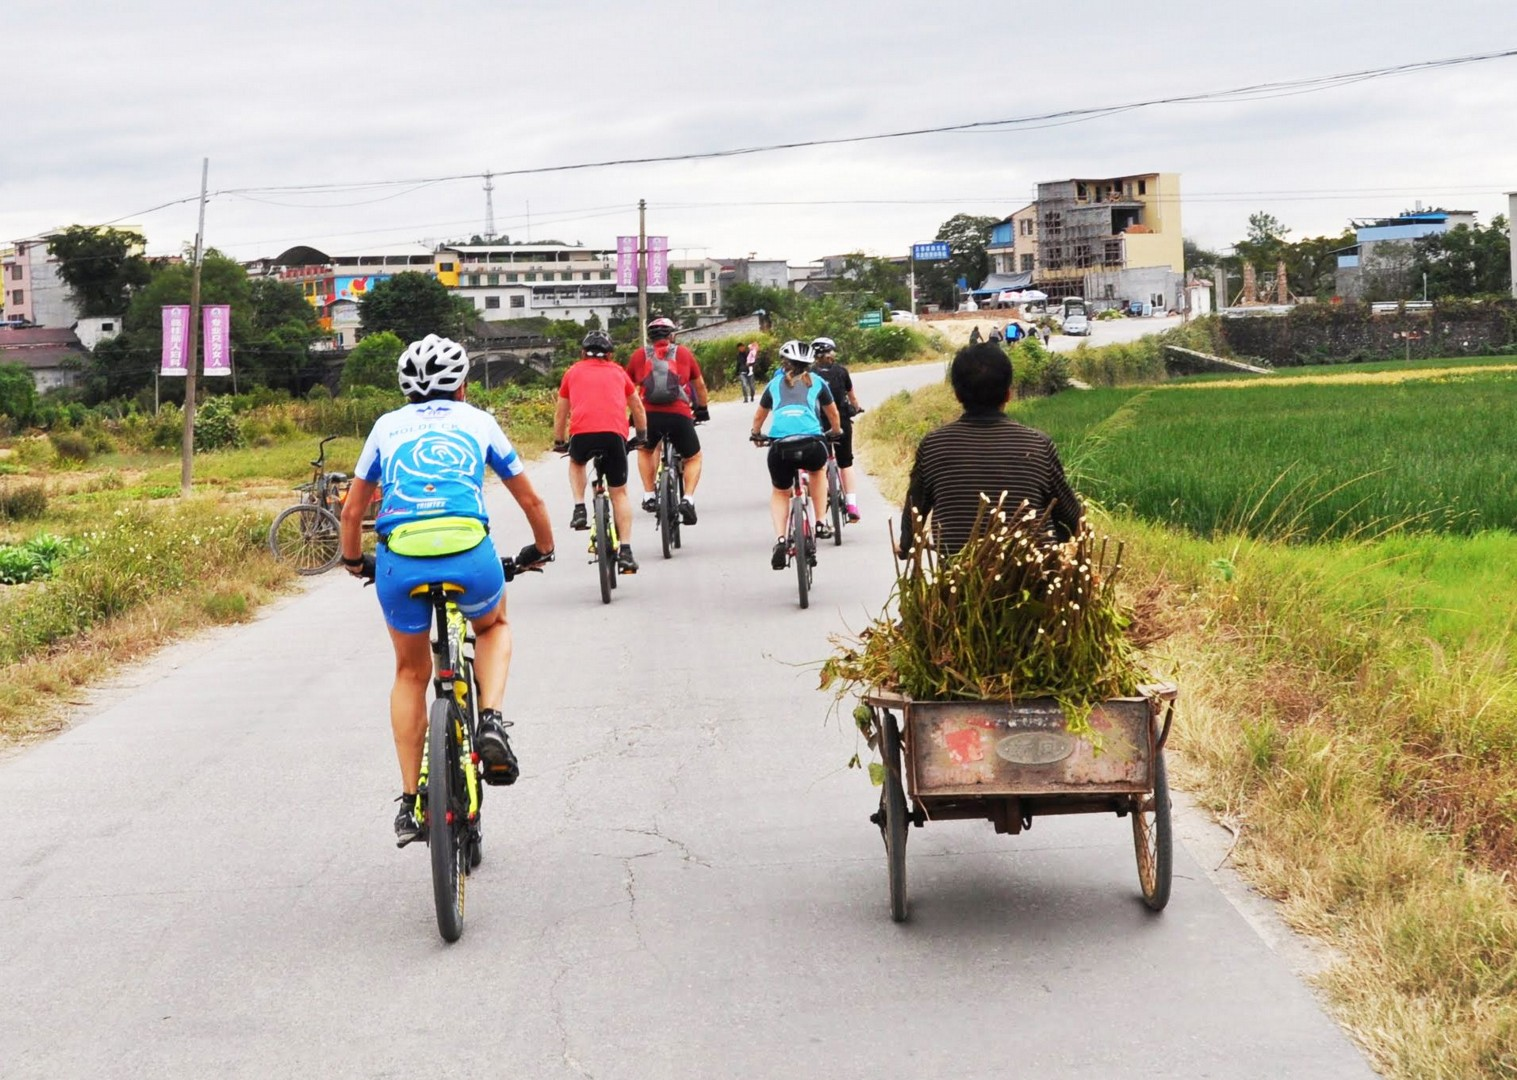 001-074.jpg - China - Guilin and Guangxi - Cycling Adventures